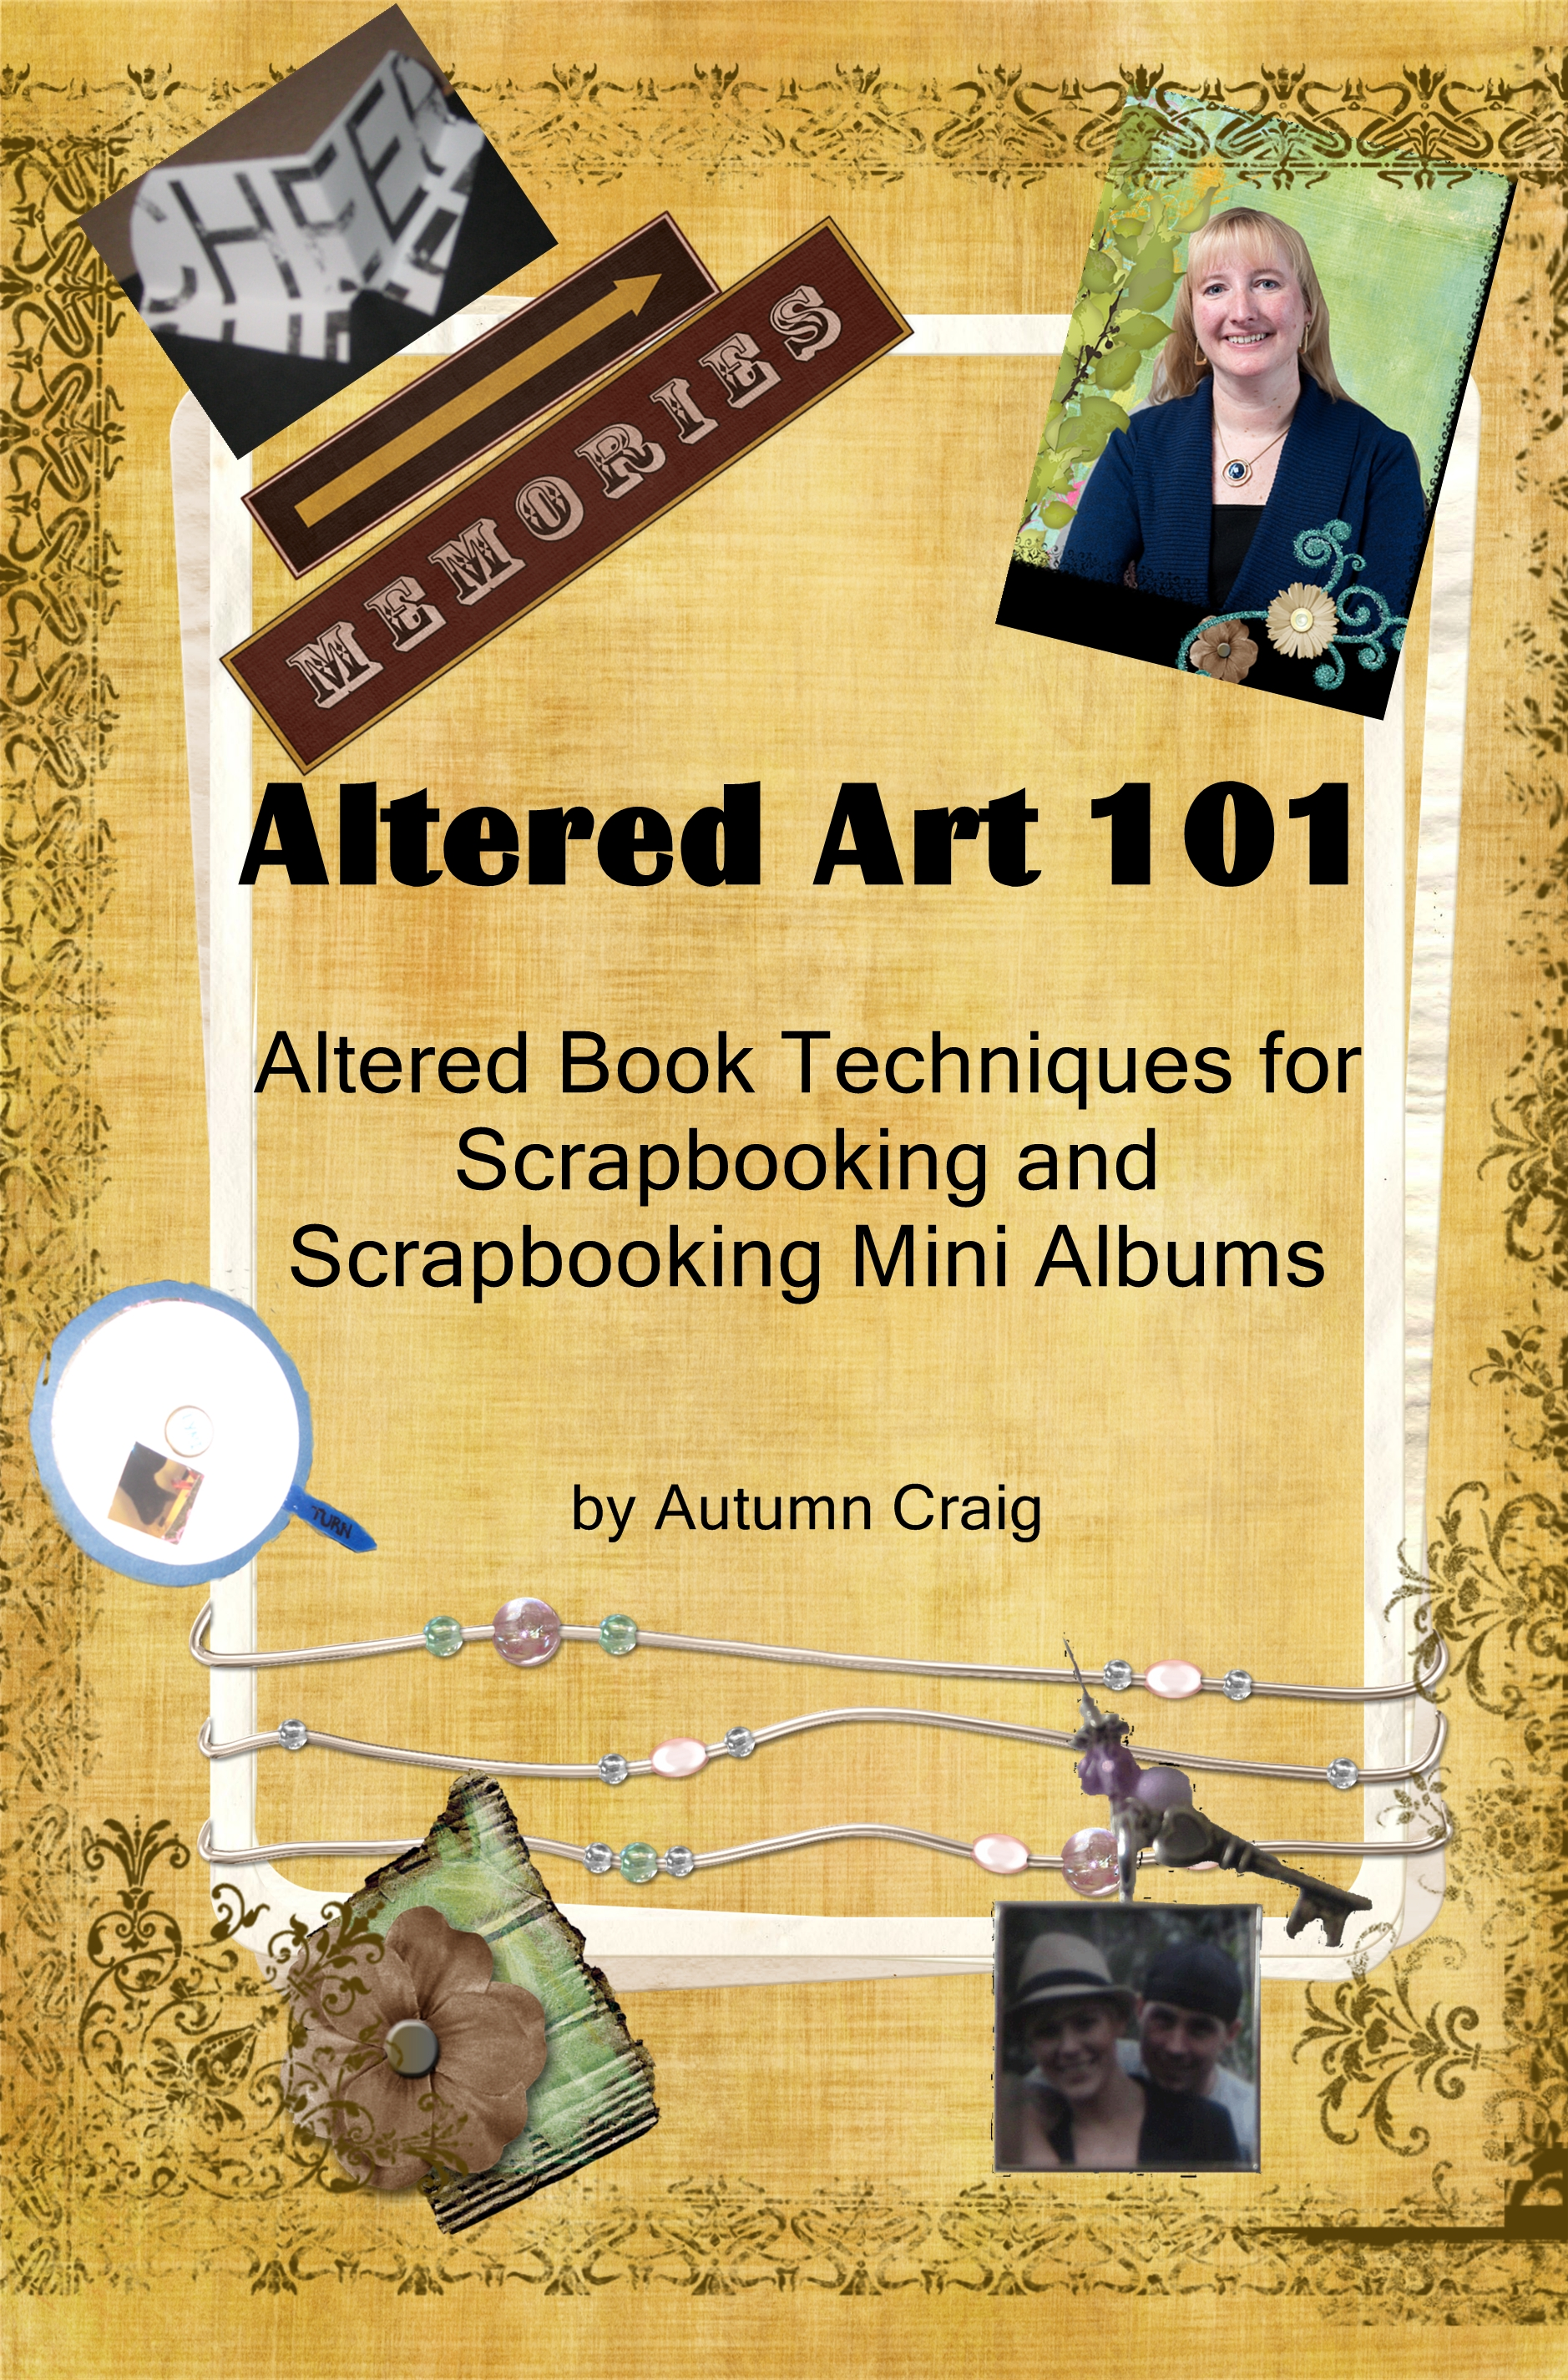 altered art new cover - Page 001